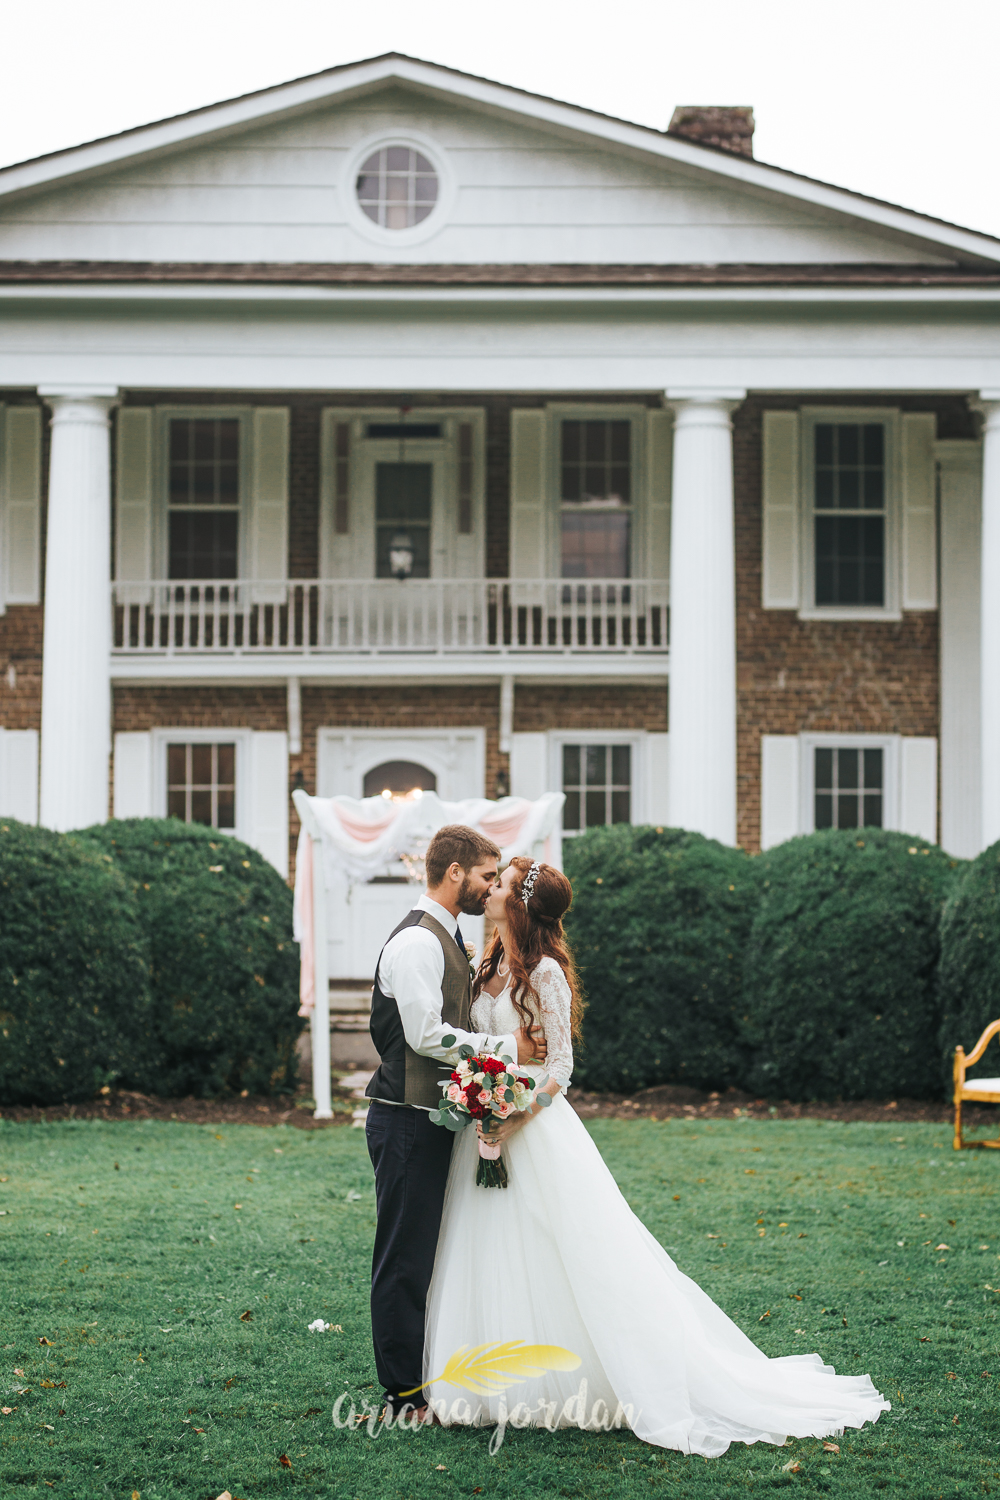 206 - Ariana Jordan - Kentucky Wedding Photographer - Landon & Tabitha_.jpg